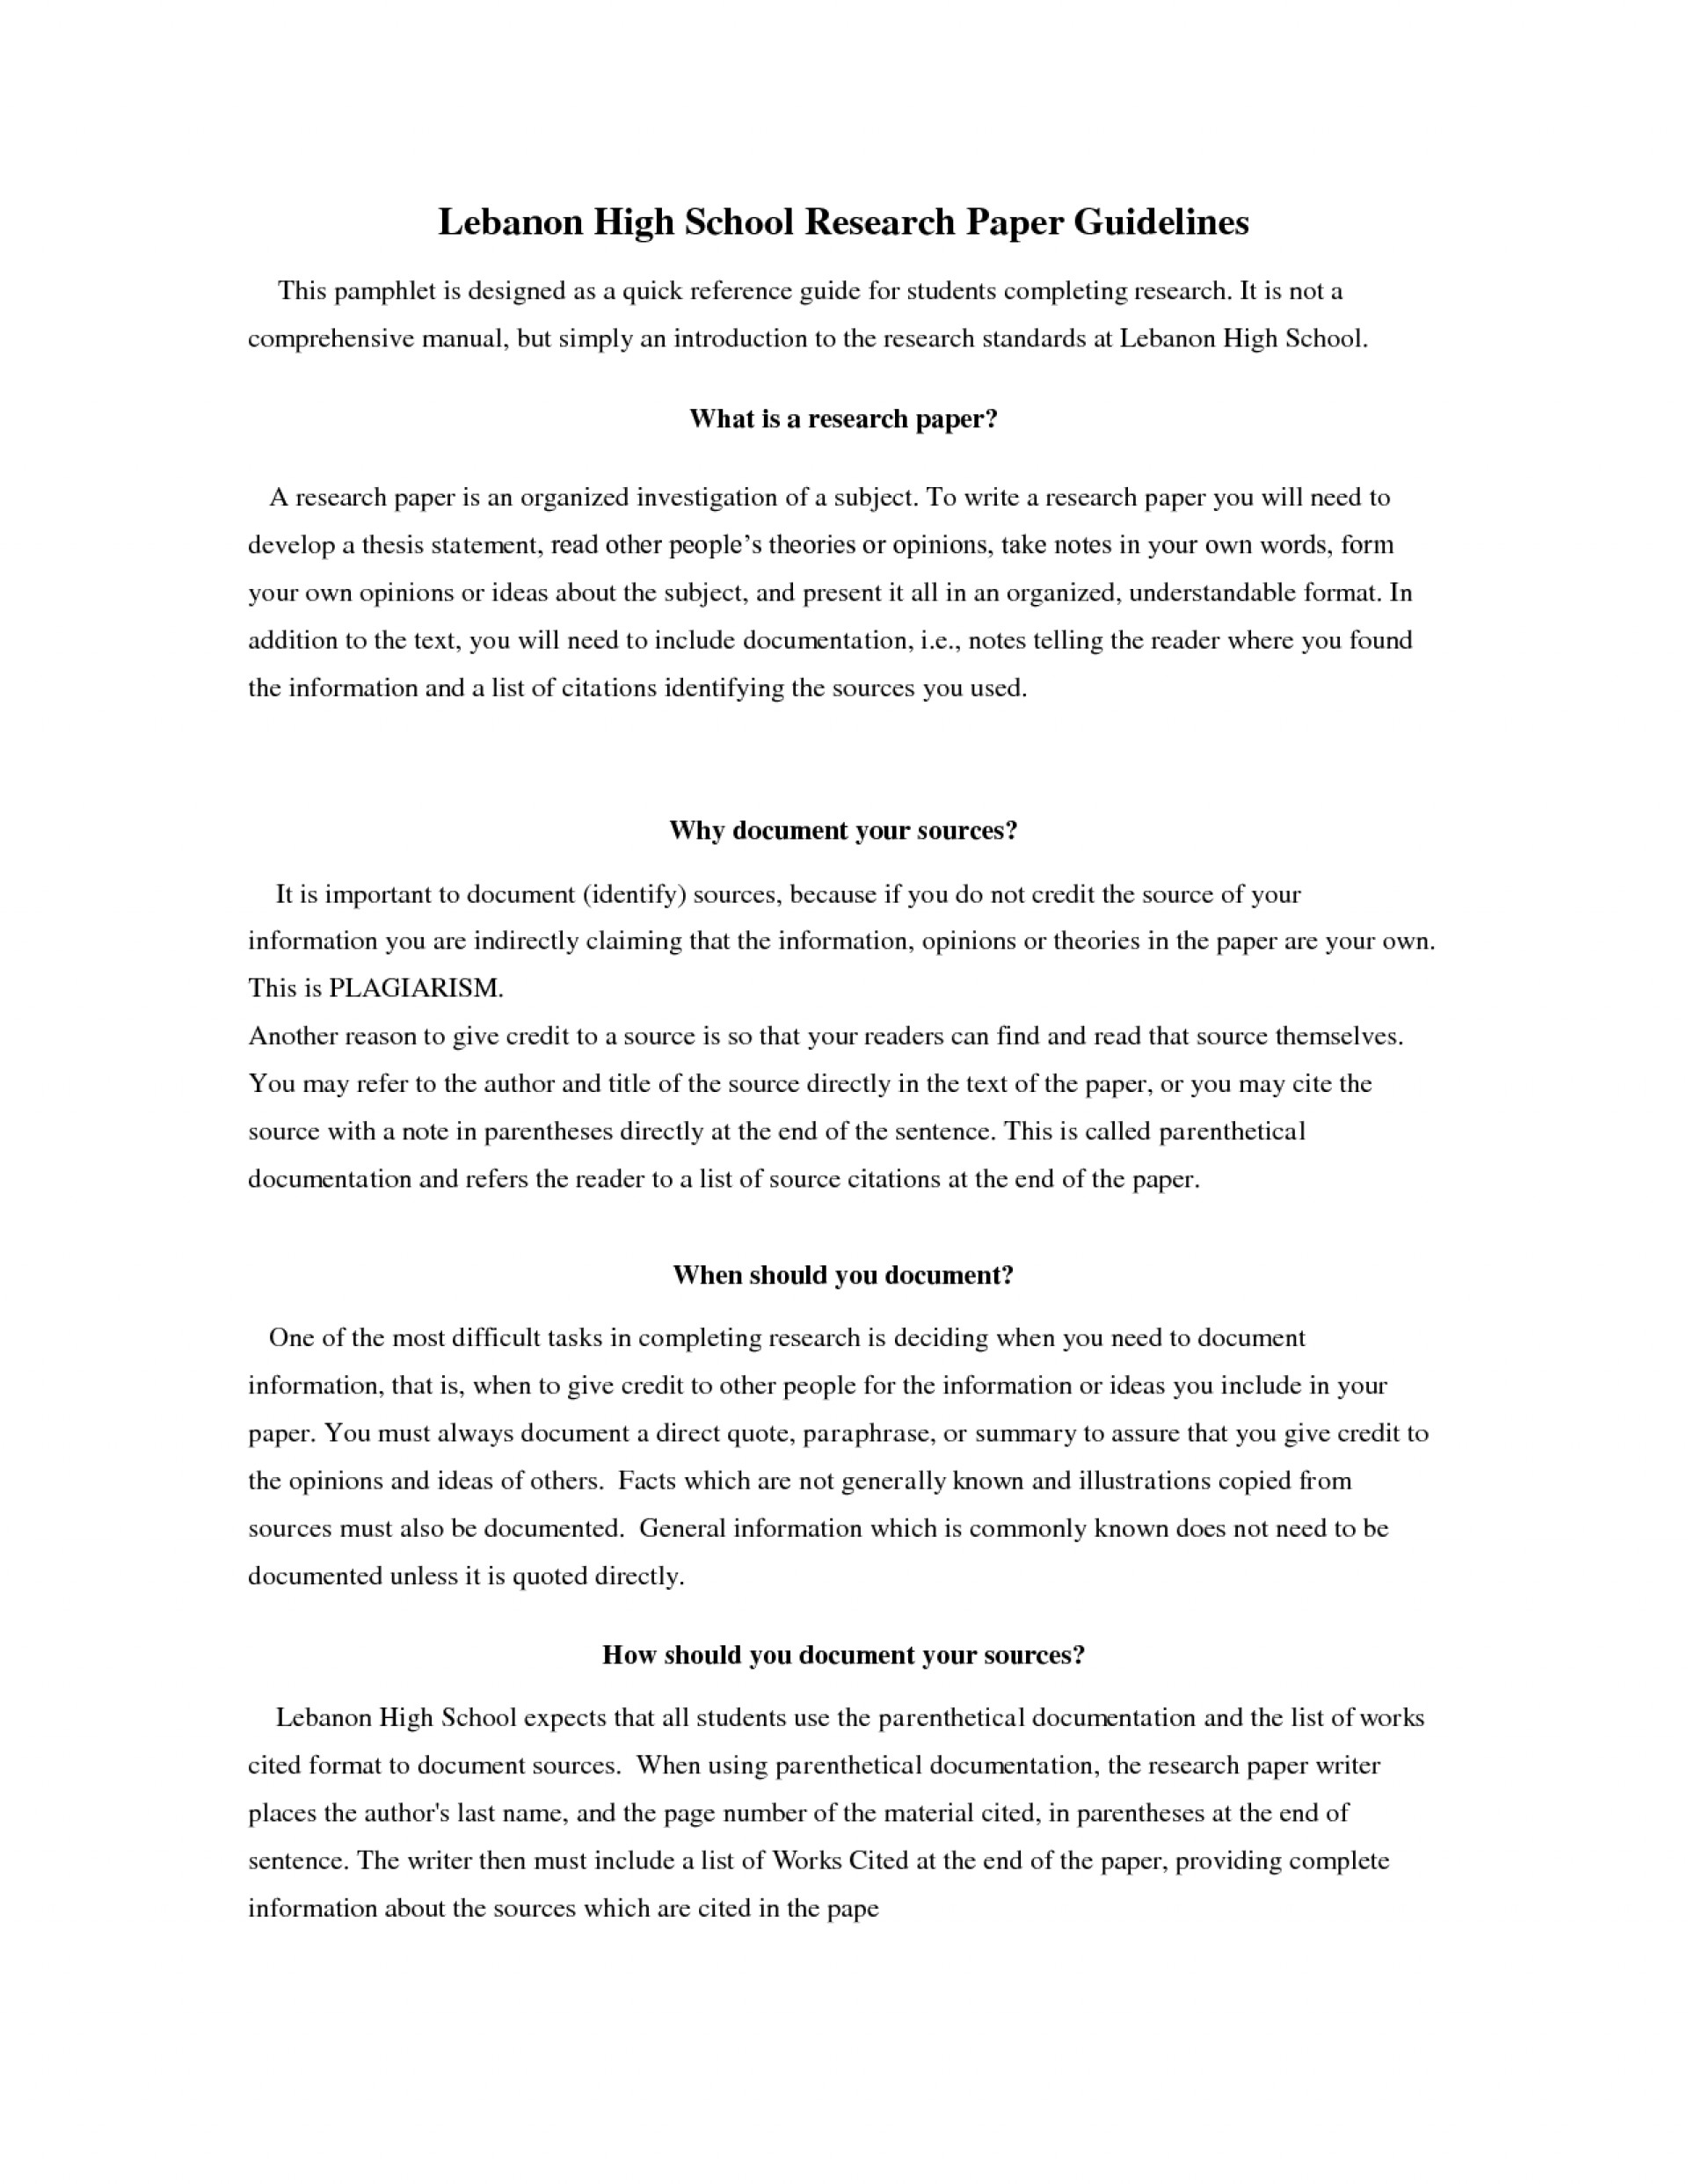 024 Research Paper Good Singular Topic Topics 2019 Ideas In Business And Finance For College Students 1920